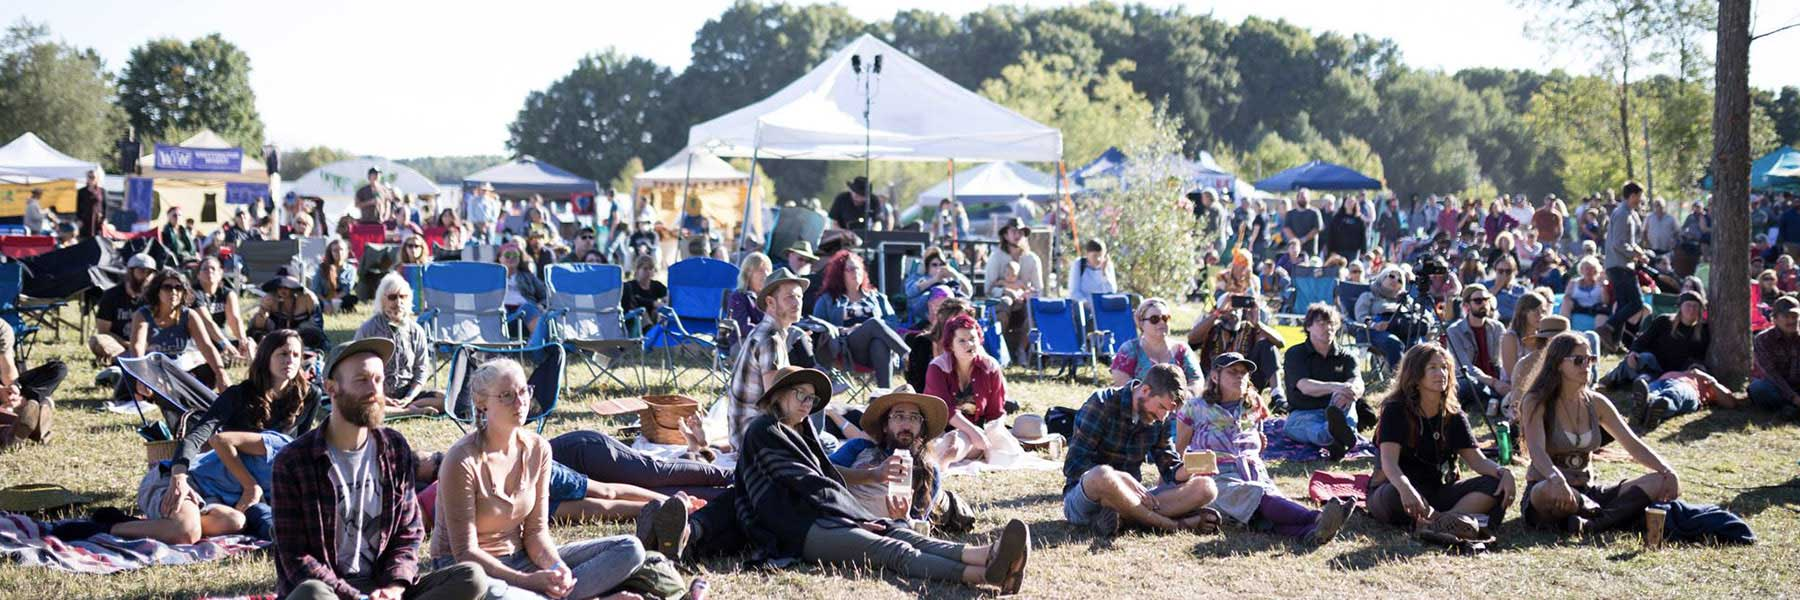 Earthwork Harvest Gathering Crowd